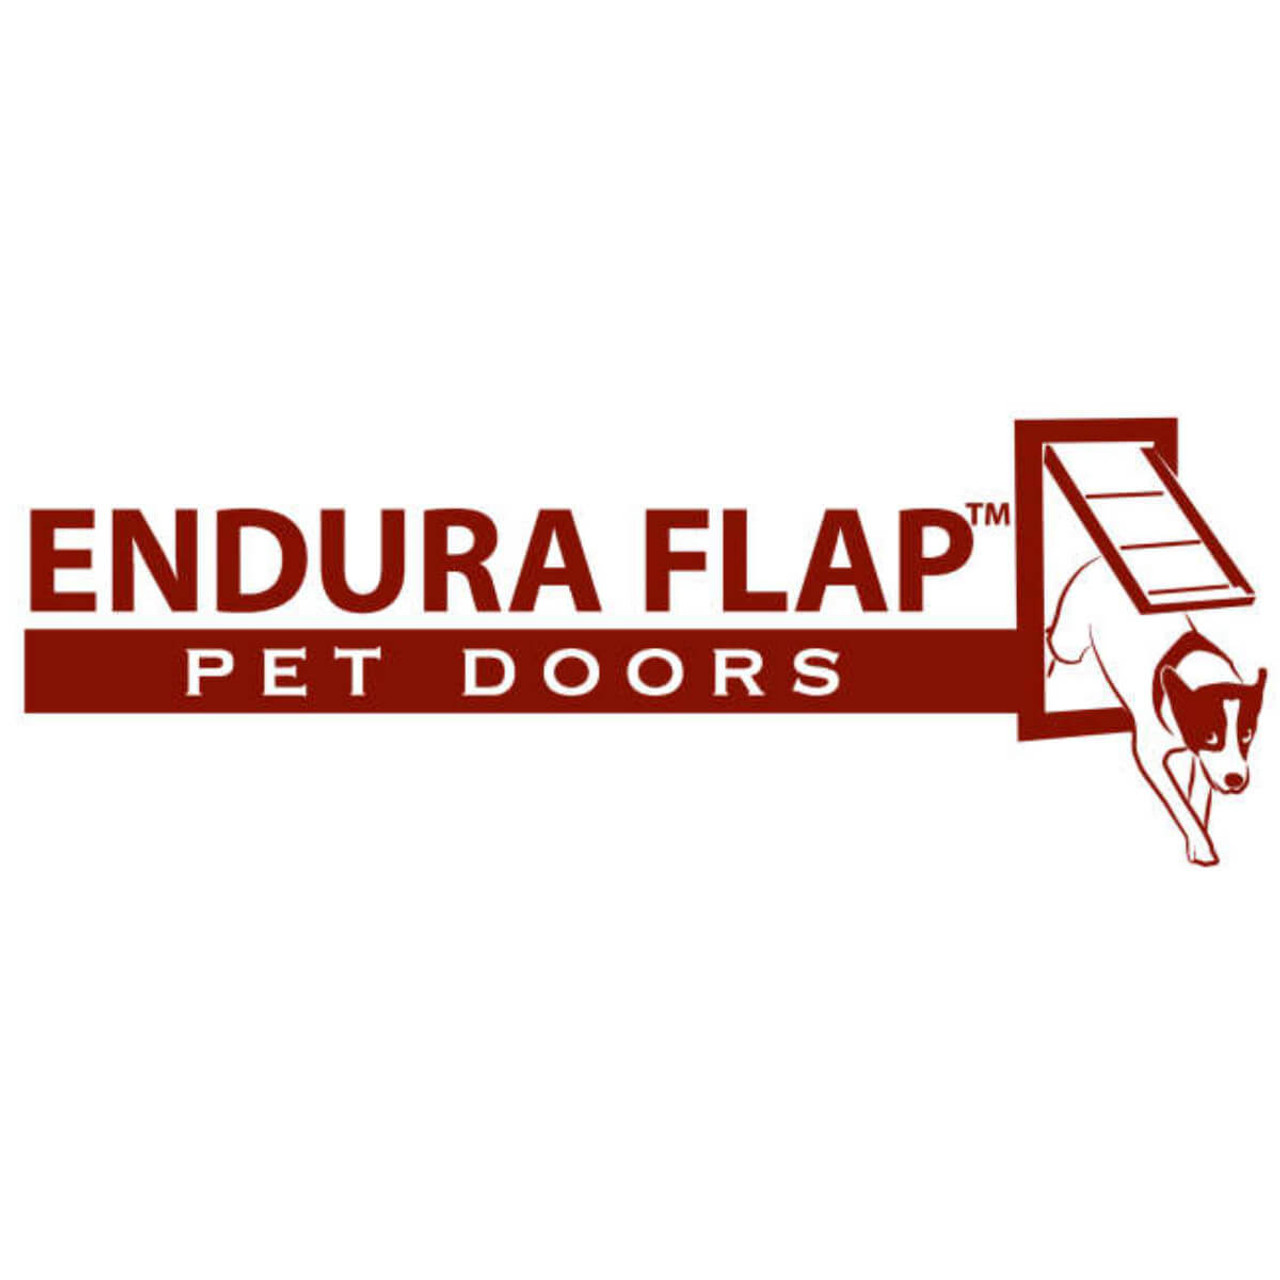 Endura Flap Pet Doors have hollow soft plastic flaps which swing from a hinge and are super durable and weather tight